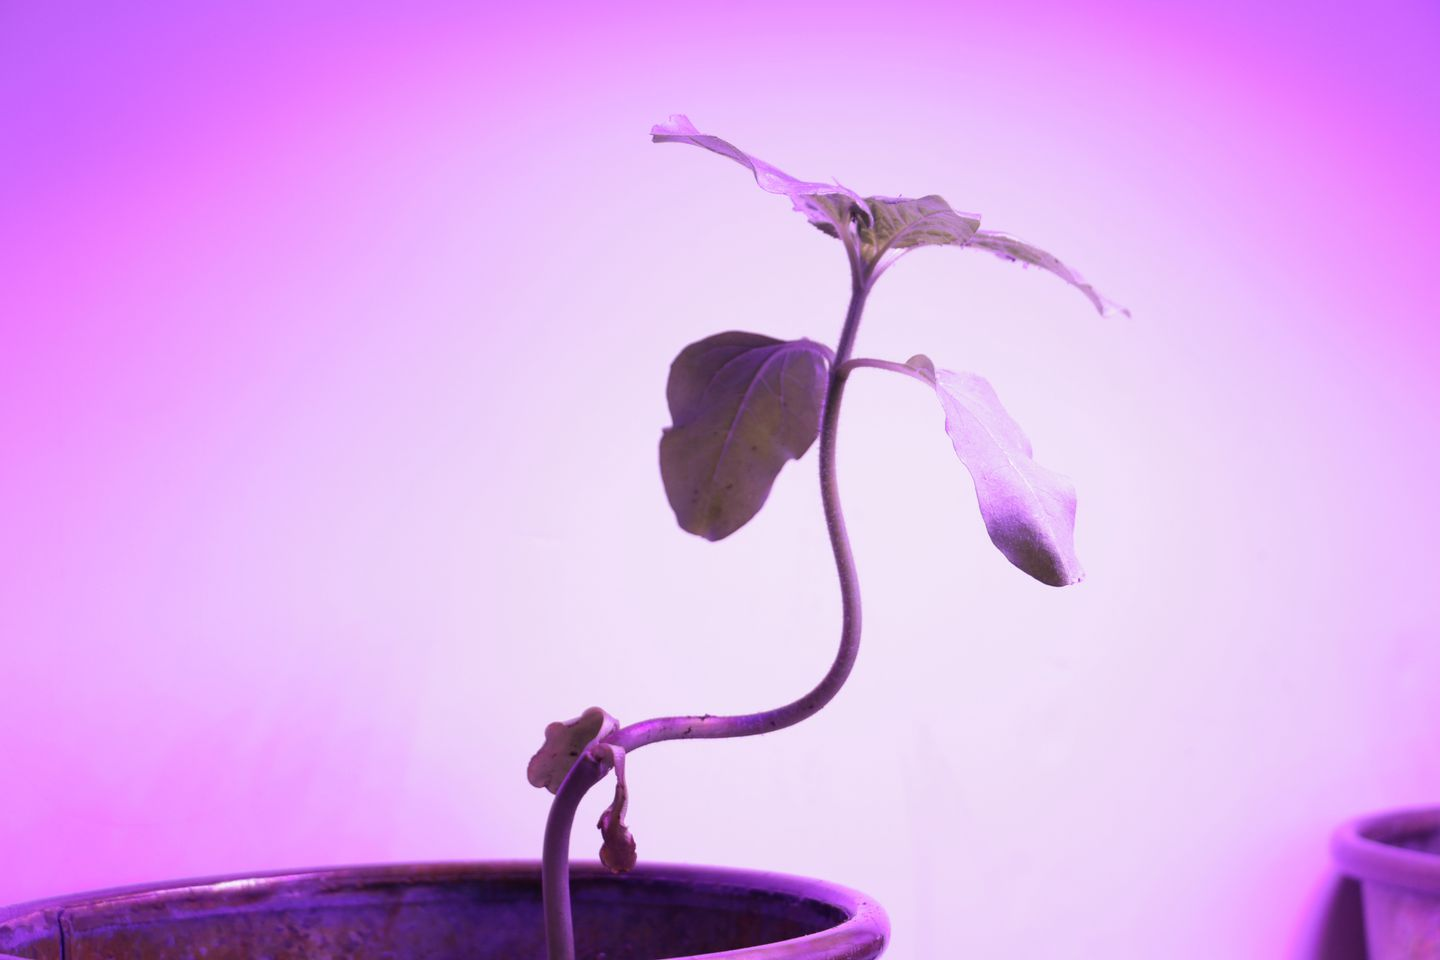 In an experiment at MIT called Automated Arbortecture, researchers used computer-controlled lights to control the shape a plant took as it grew.